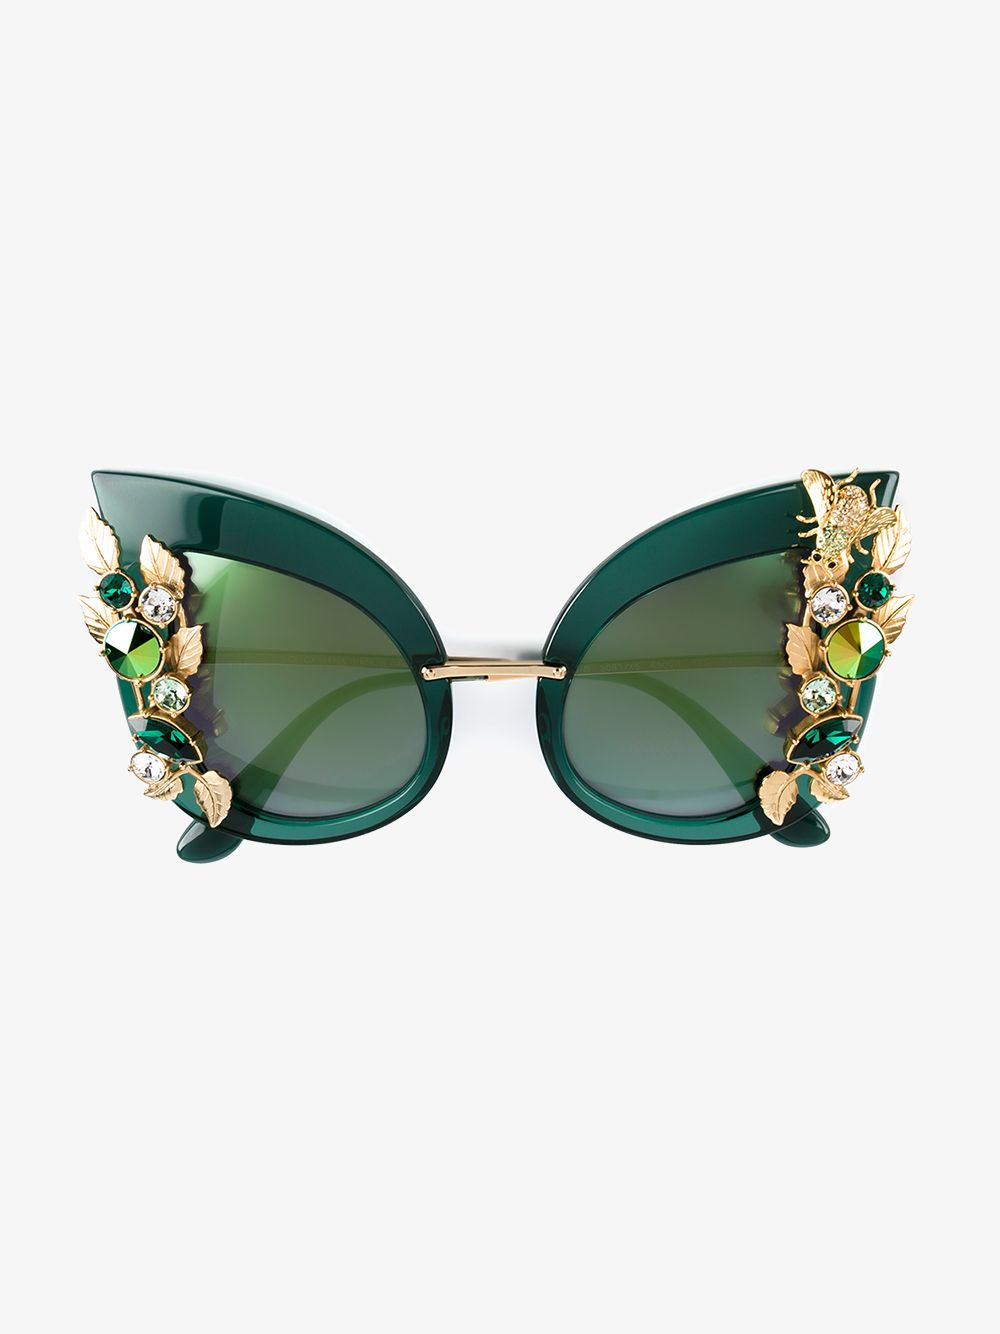 6eafd9f324a5 Dolce & Gabbana crystal embellished sunglasses | s t y l e | Clear ...